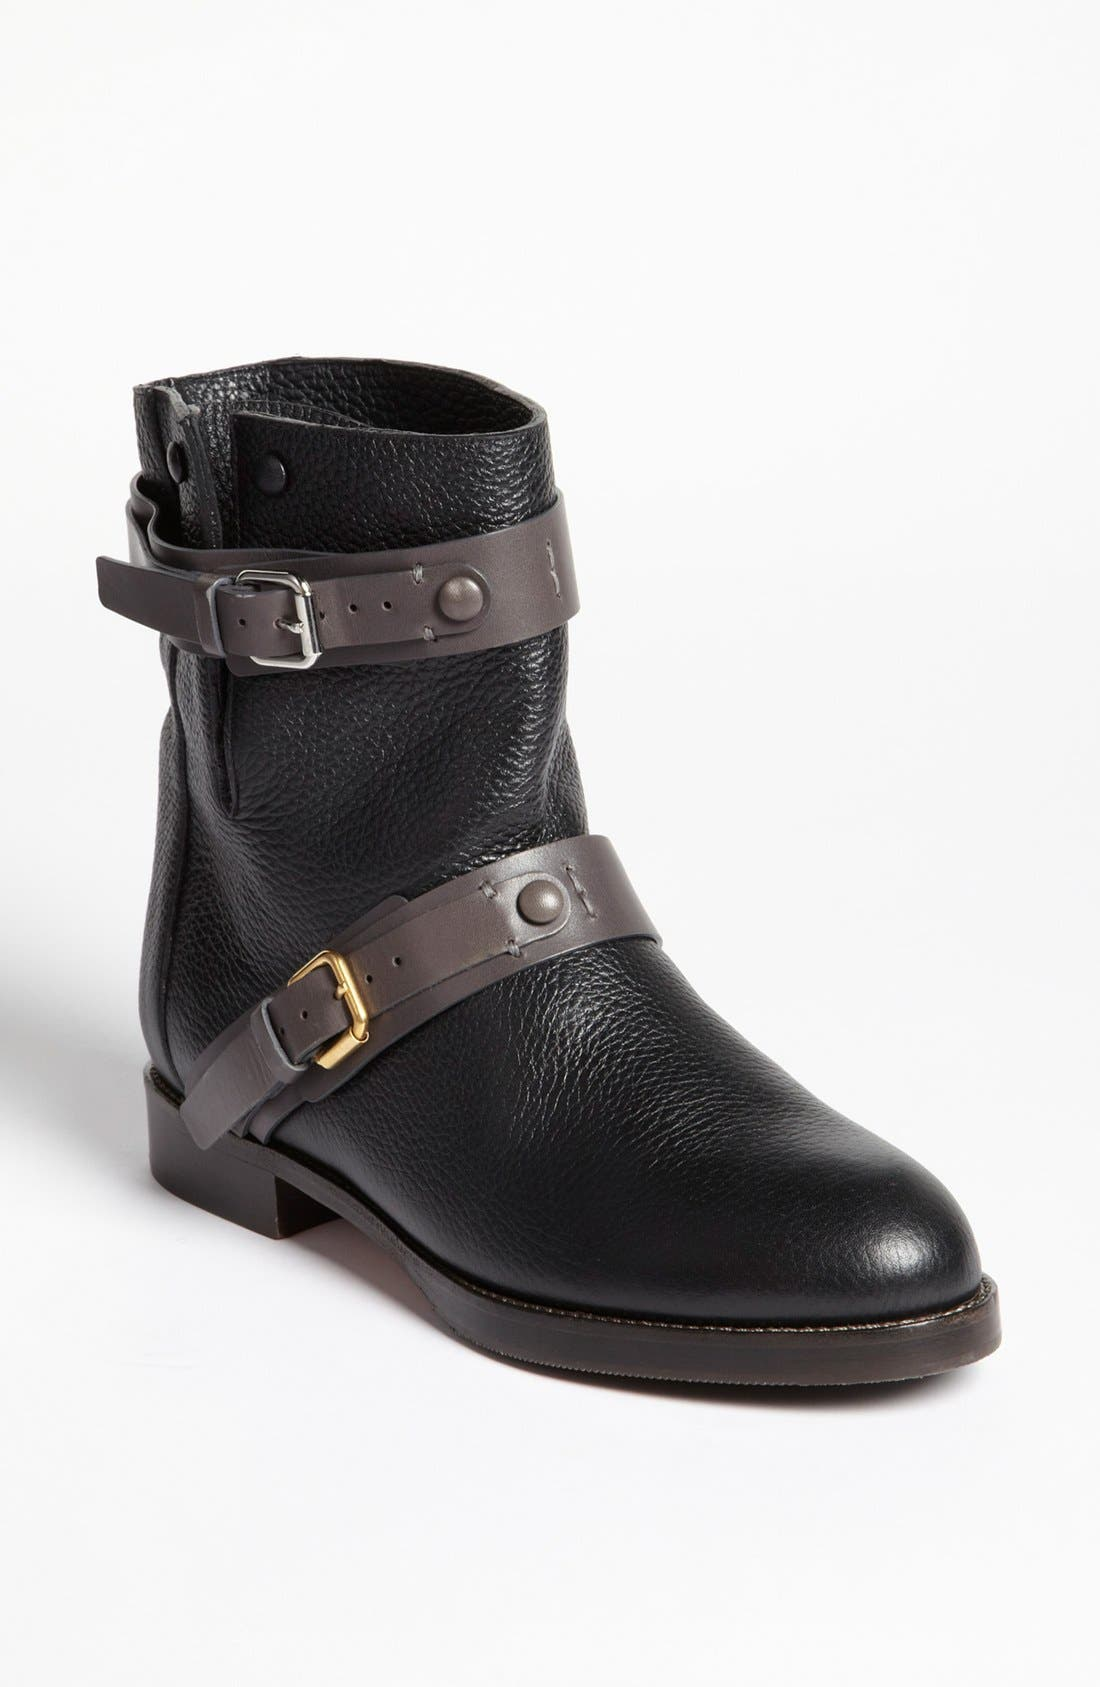 Alternate Image 1 Selected - Chloé 'Brune' Buckle Boot